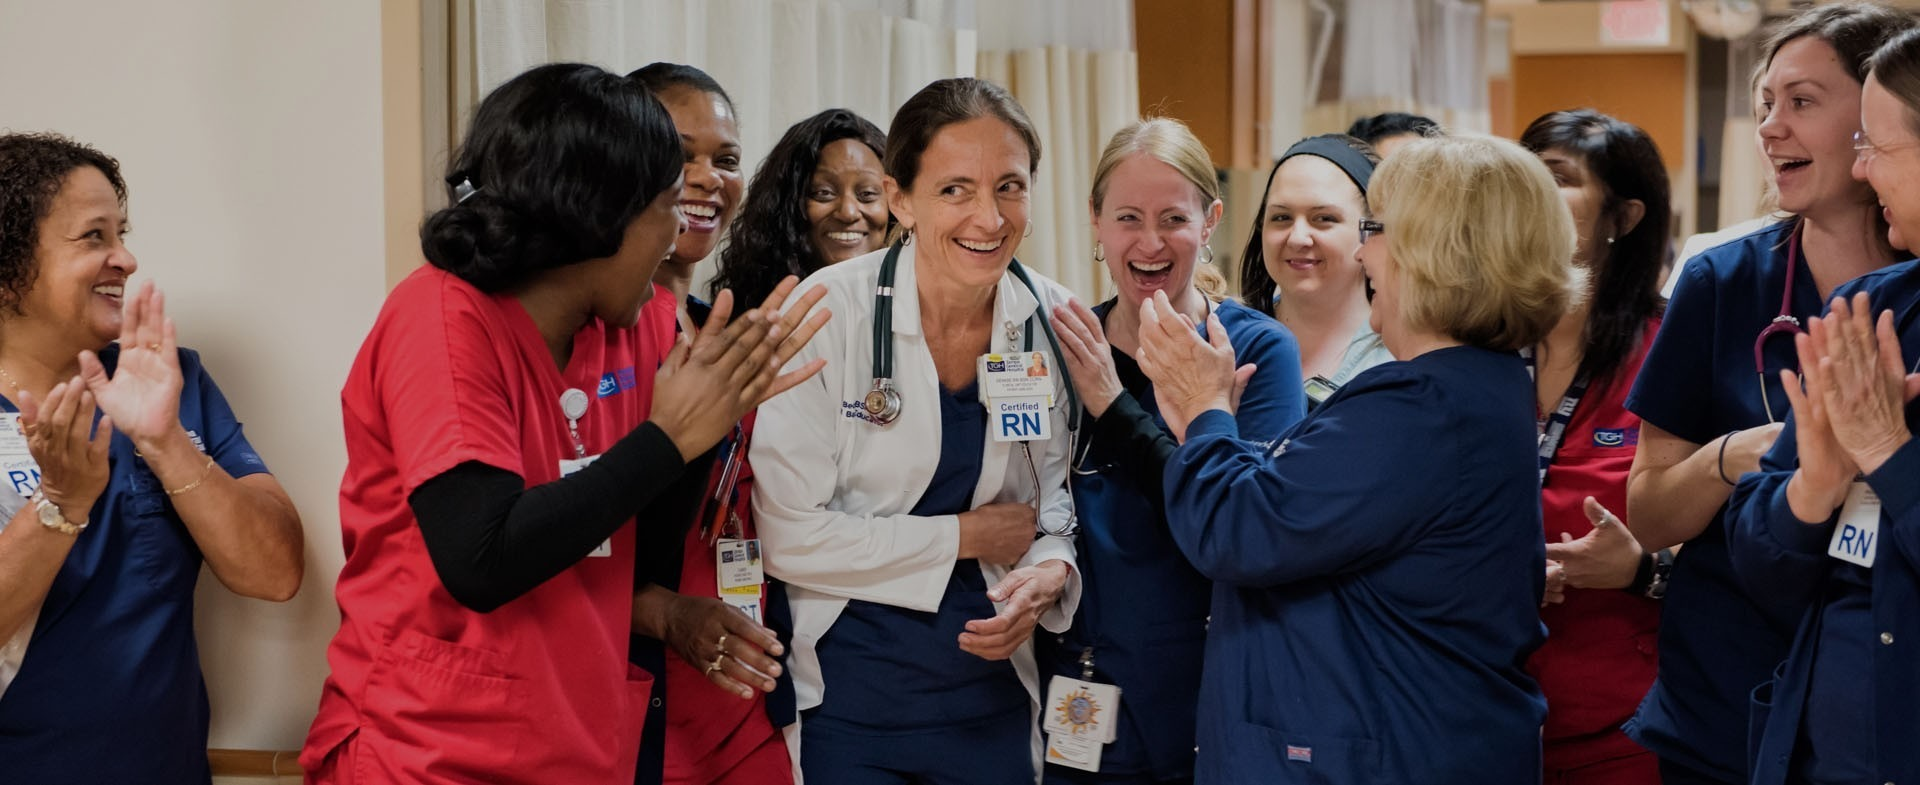 A group of nurses smiling and clapping